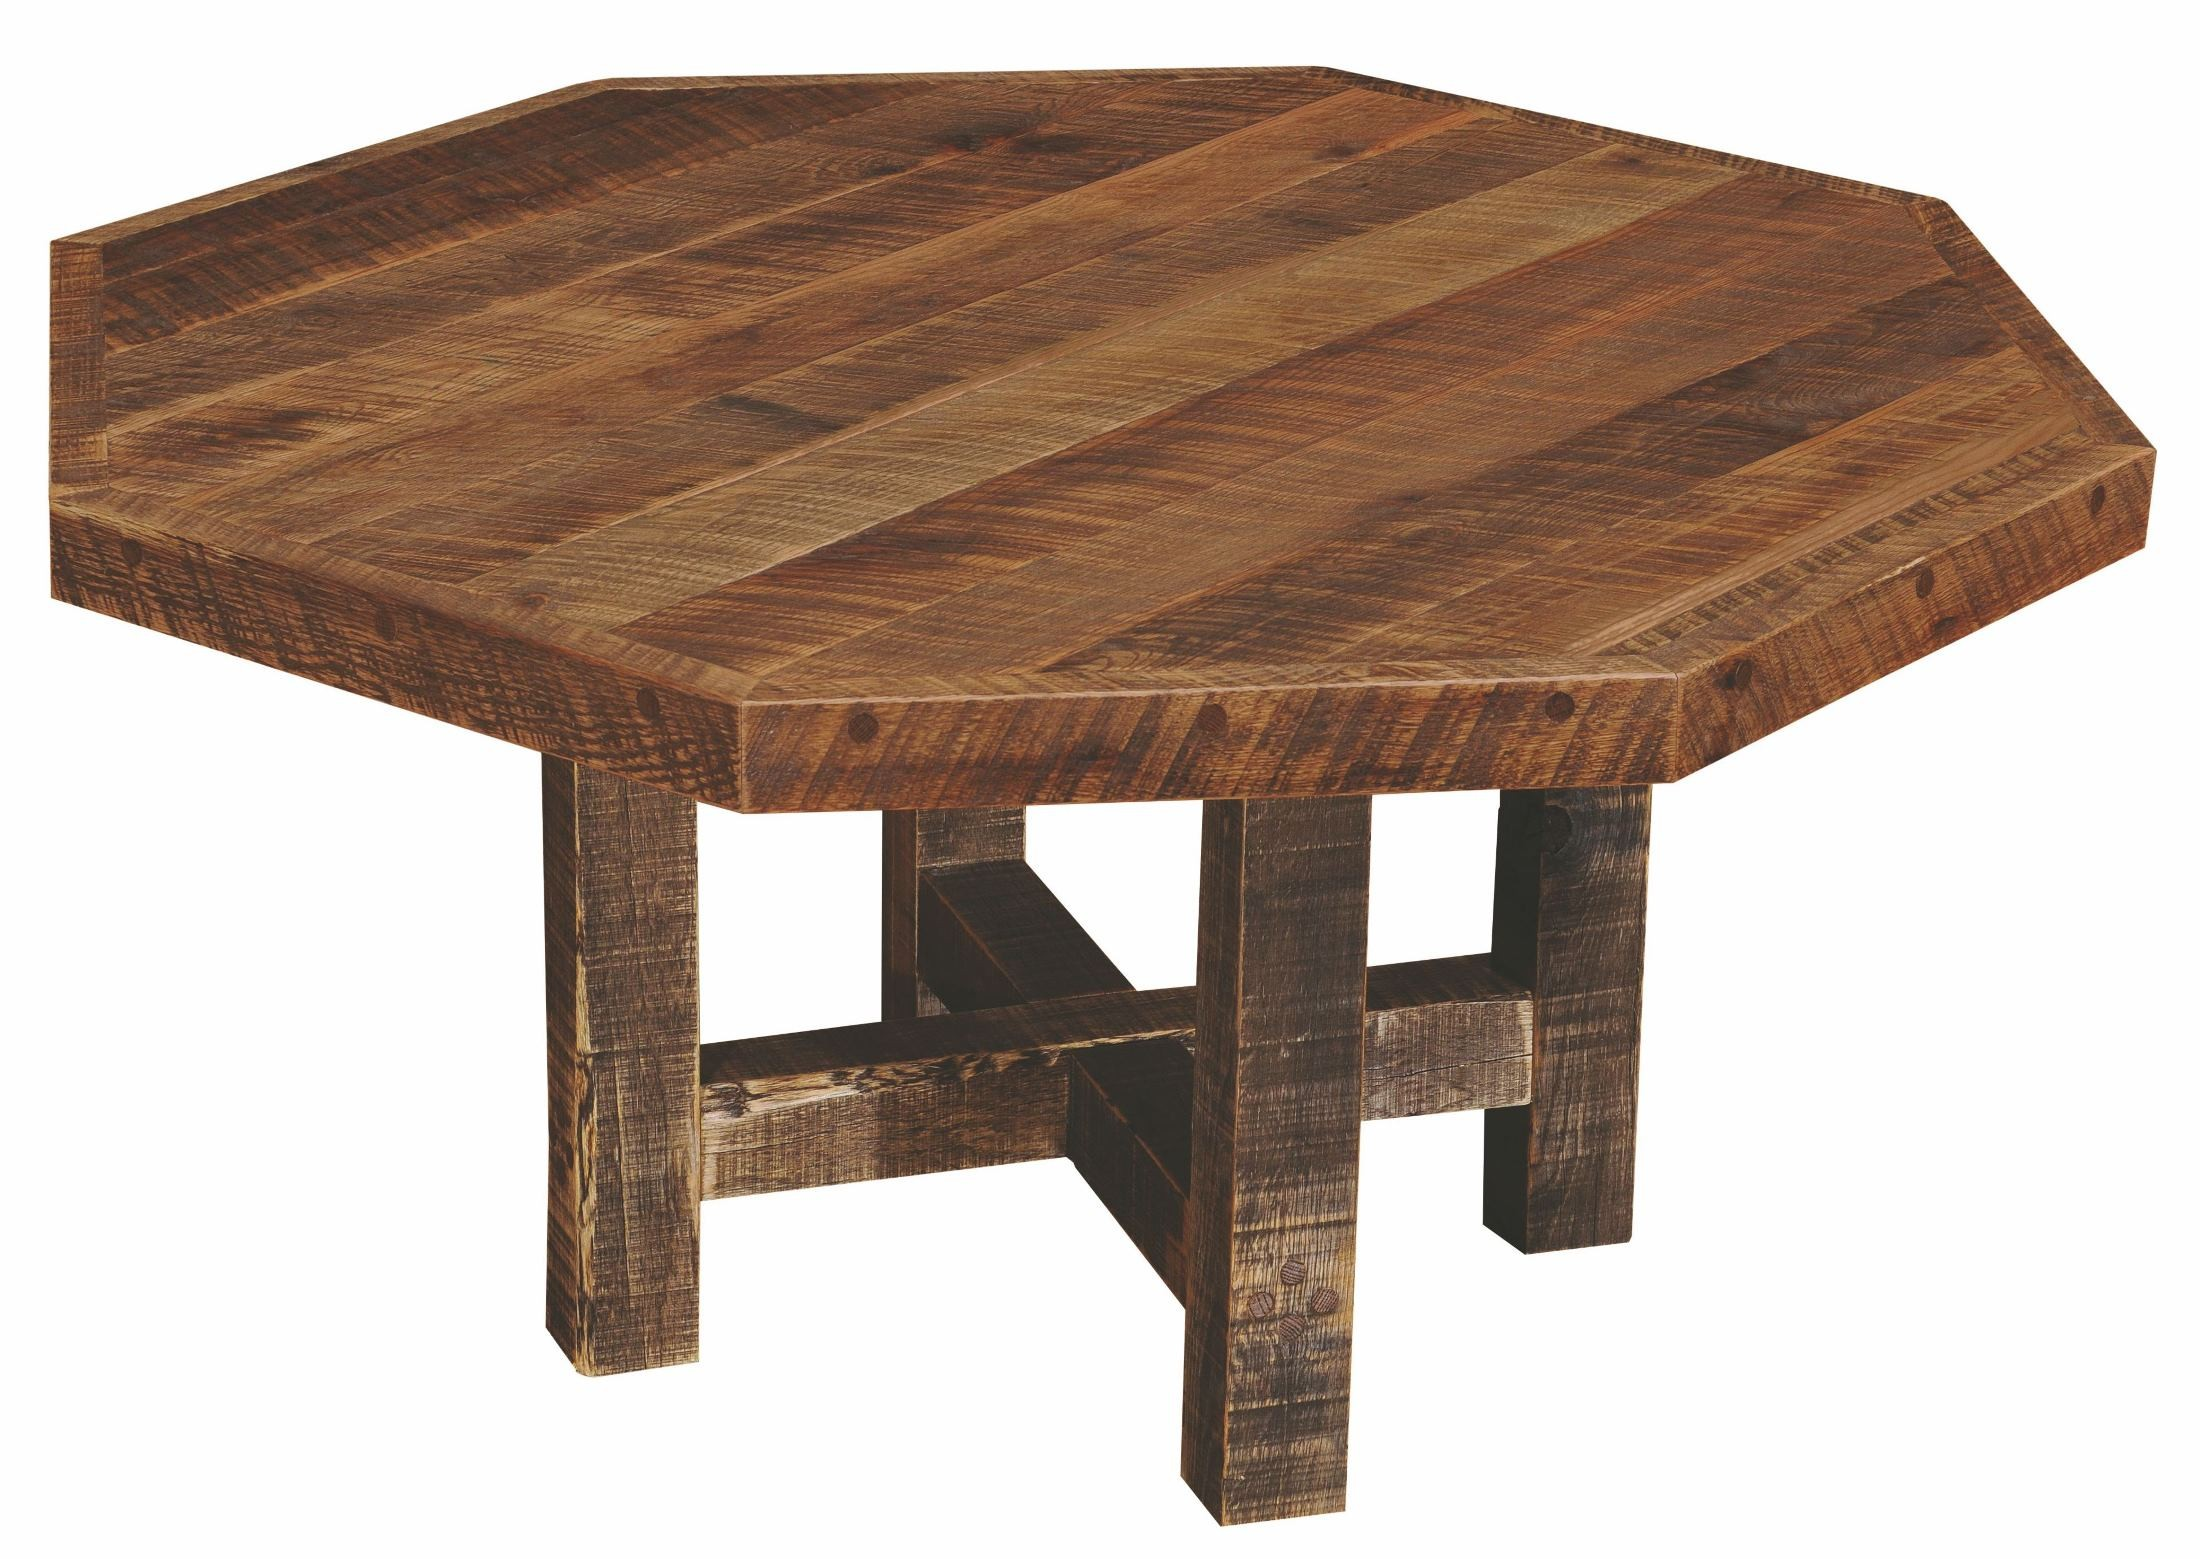 Barnwood Octagon 54quot Traditional Oak Top Dining Table from  : b15030 atbarnwoodoctogondiningtable from colemanfurniture.com size 2200 x 1559 jpeg 527kB